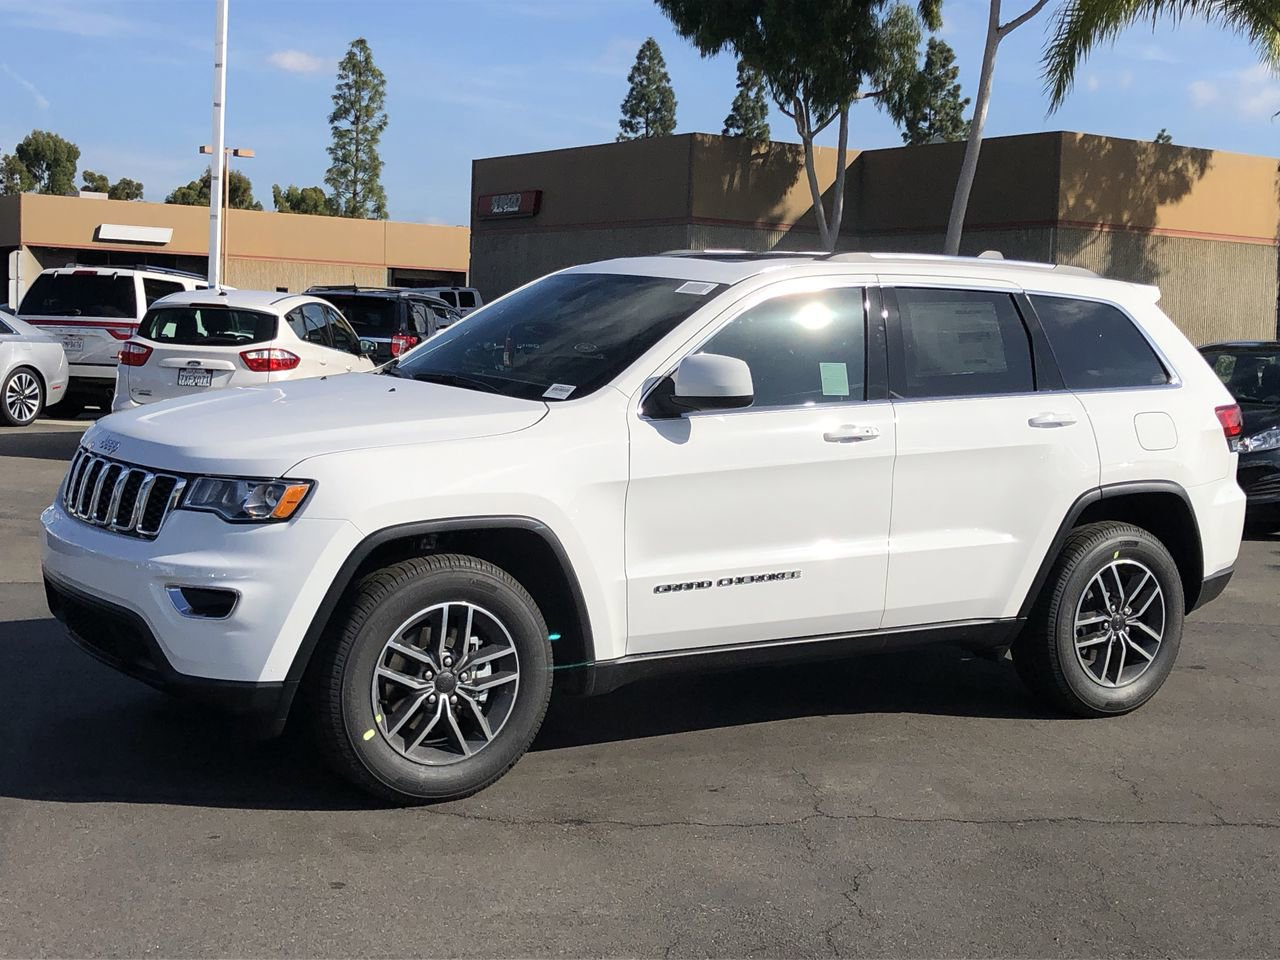 NEW 2020 JEEP GRAND CHEROKEE LAREDO X